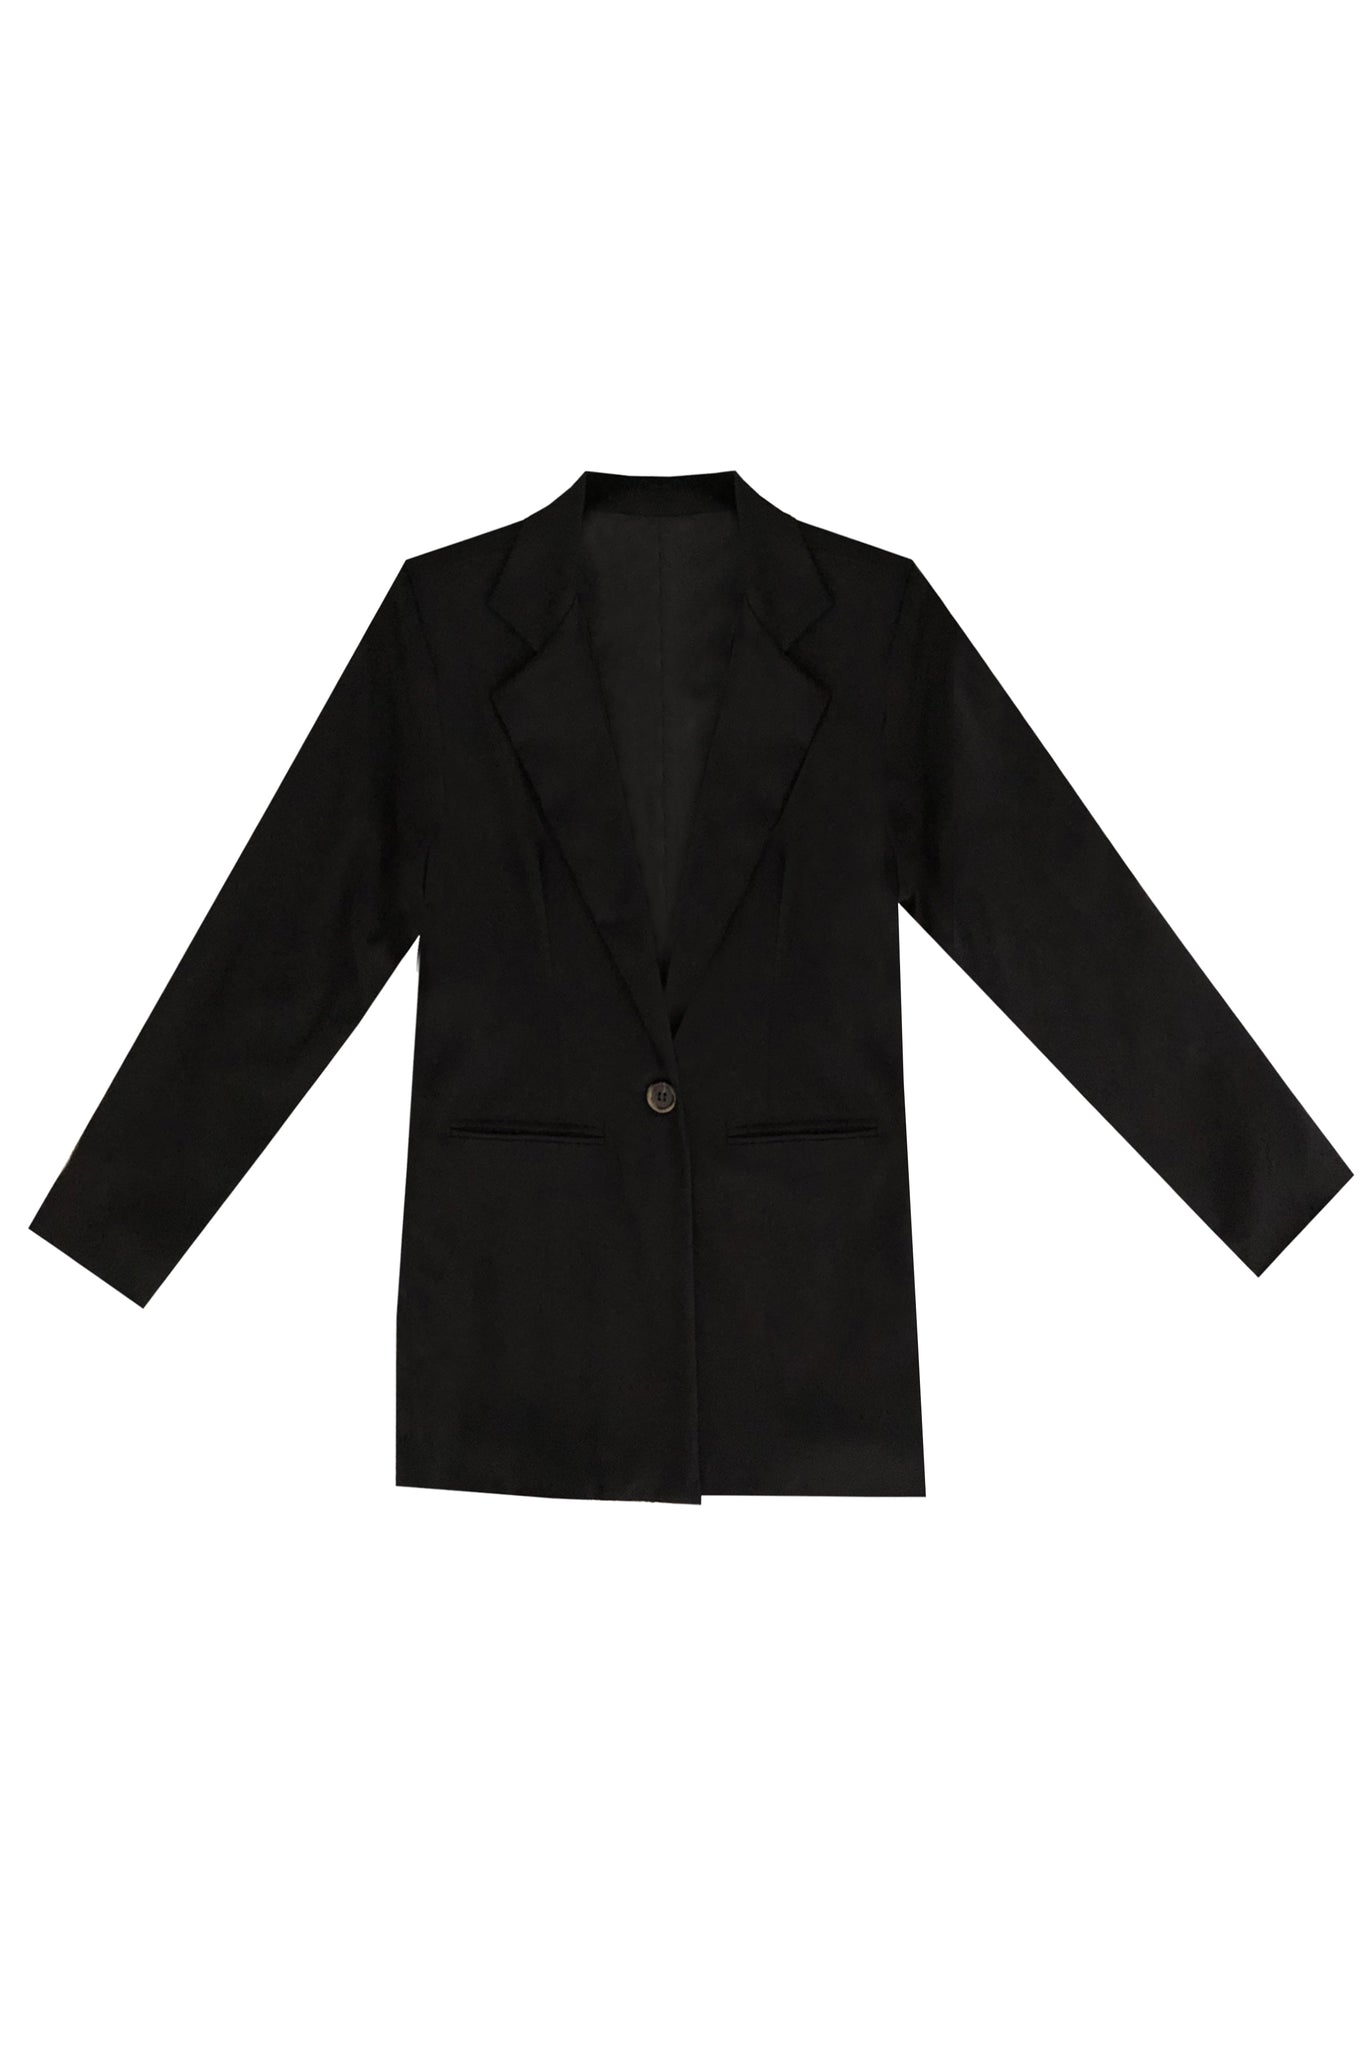 Sarina Blazer in Black